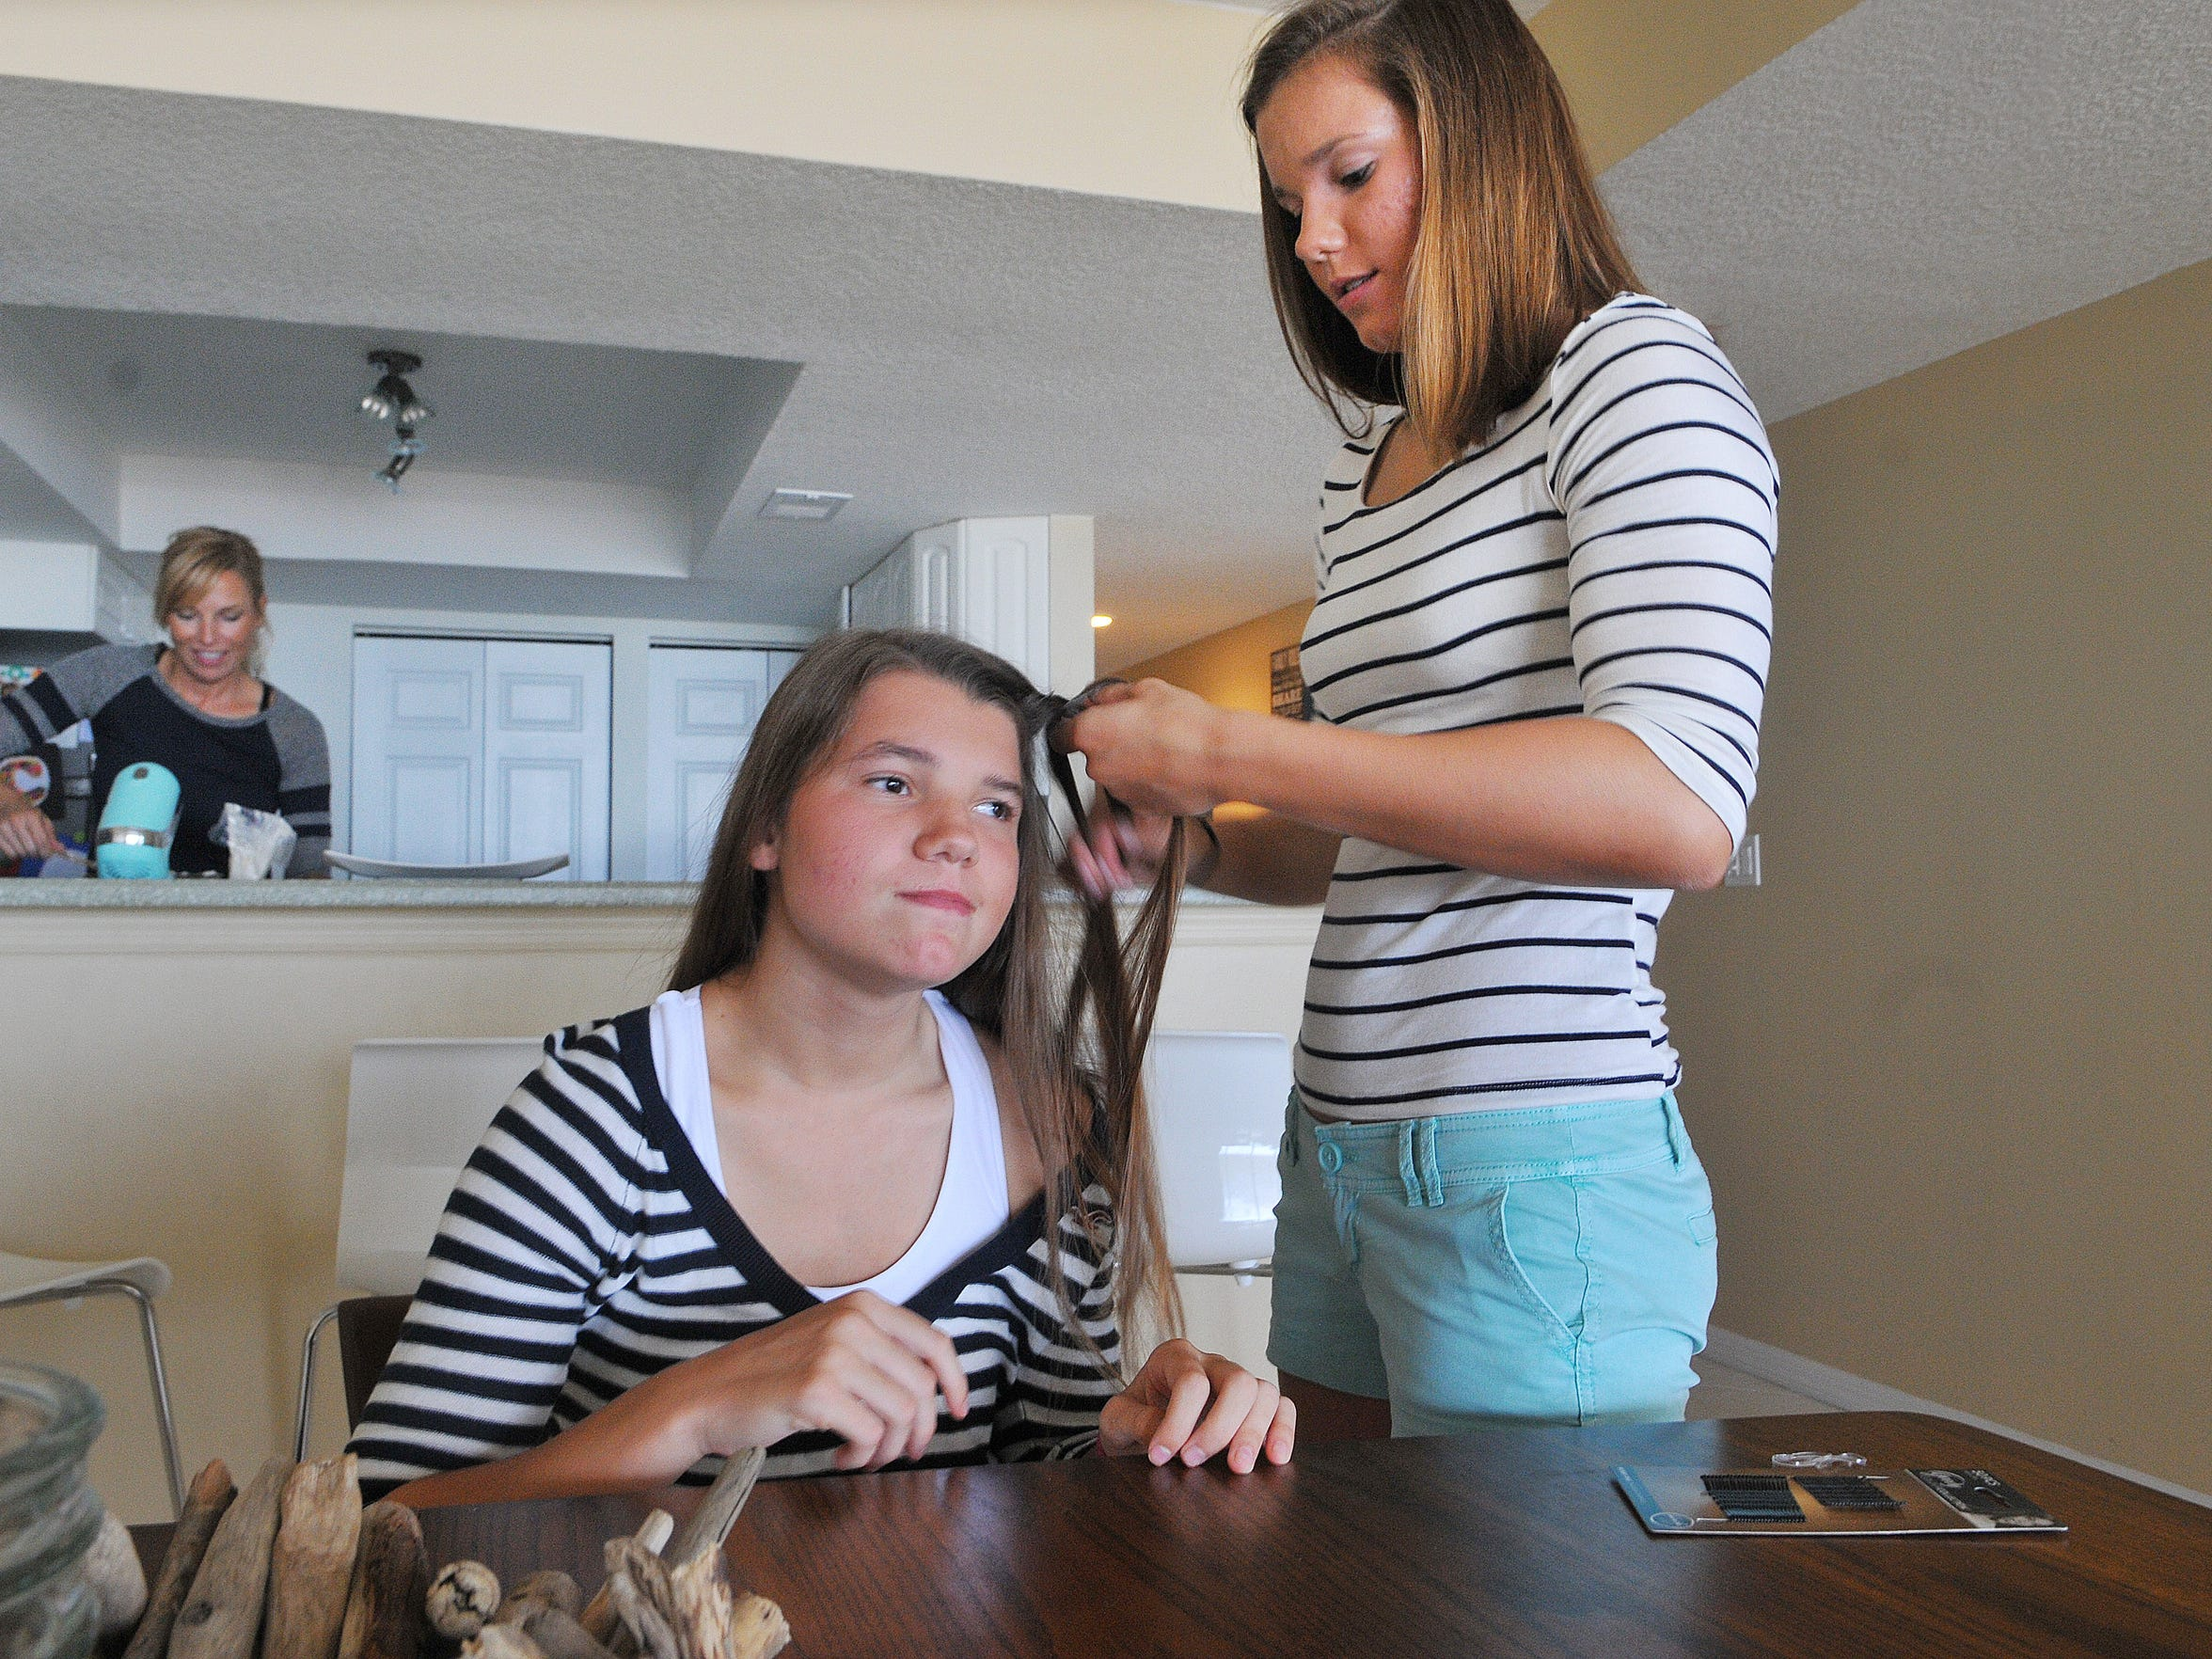 Adrianna helps braid Olivia's hair.